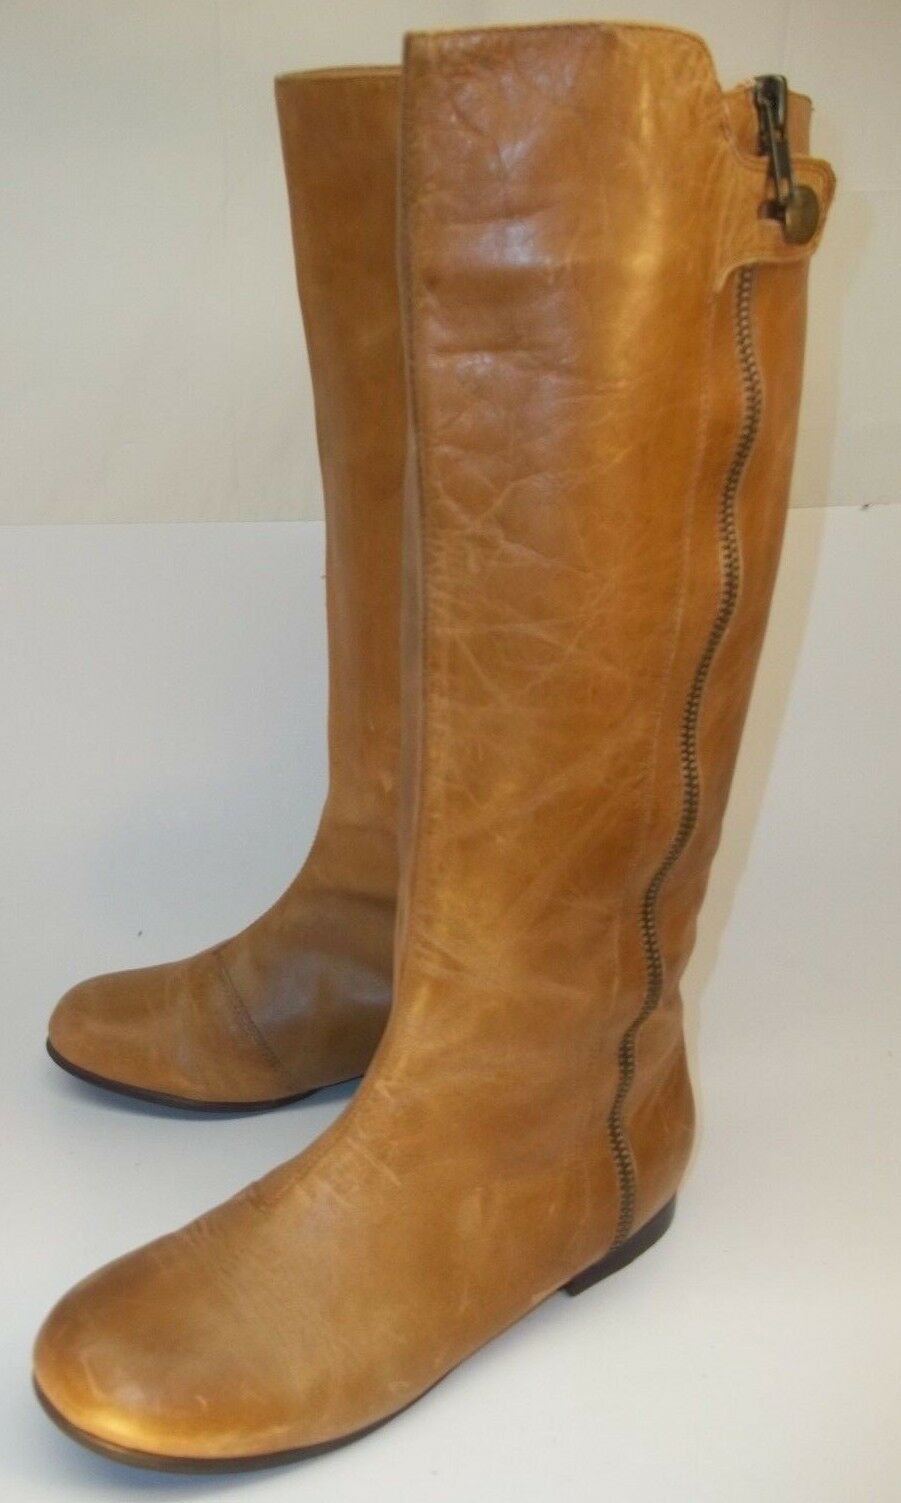 Dolce Vita Womens Tall Boots US 6 Brown Leather pull on Lined decorative zipper